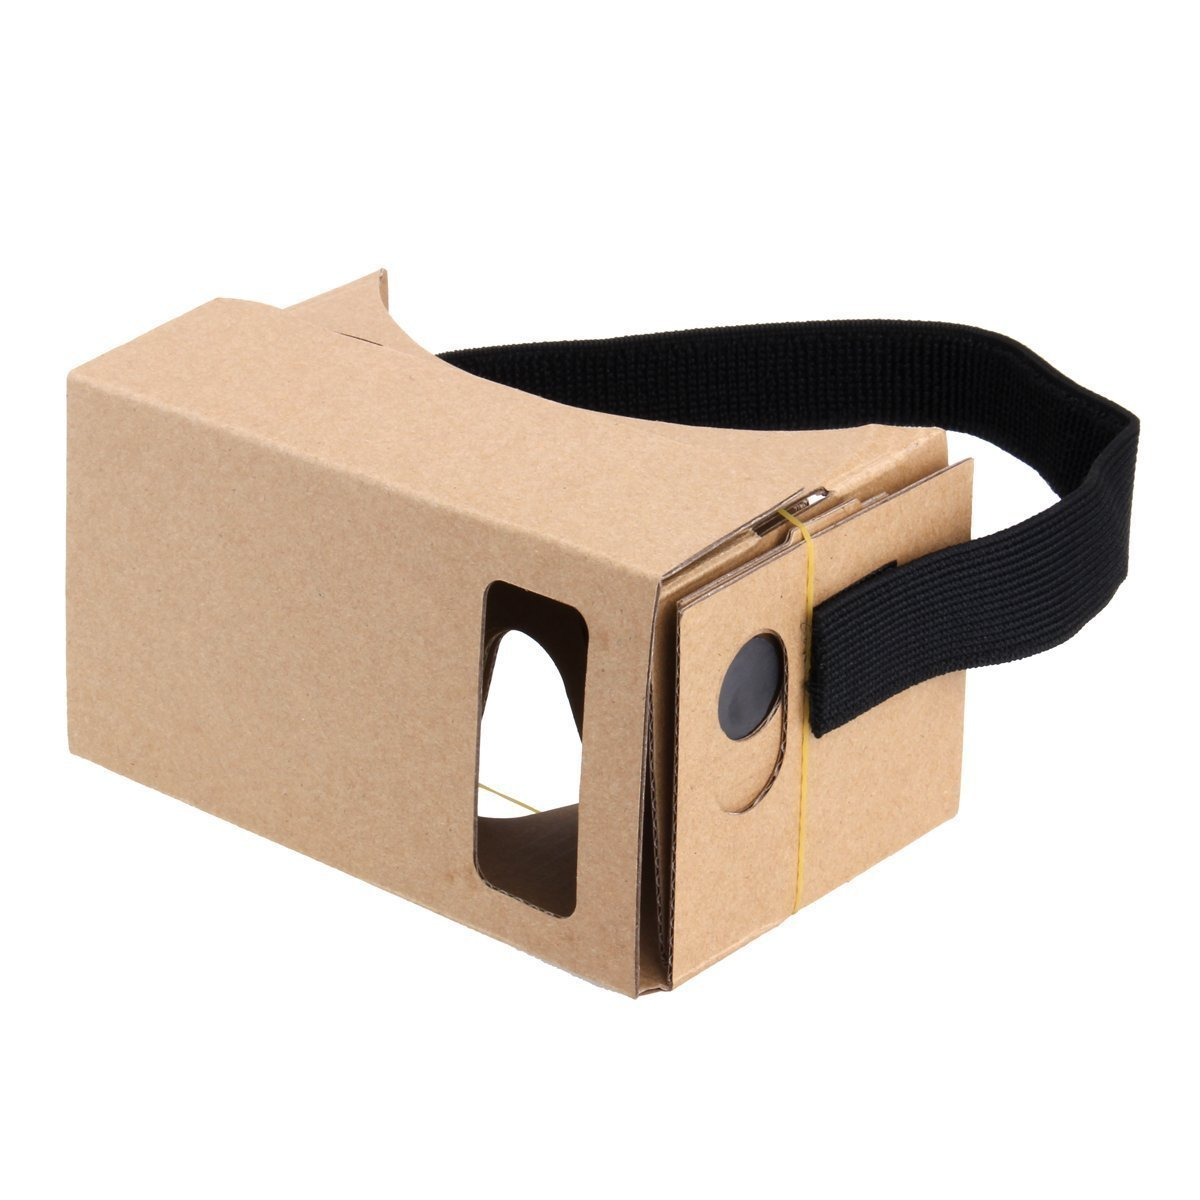 Blingkingdom - (2pcs in Pack) Google Cardboard Headset 3D Virtual Reality VR Goggles for Android Smart Phones iPhone + NFC and Head-strap by BlingKingdom (Image #2)